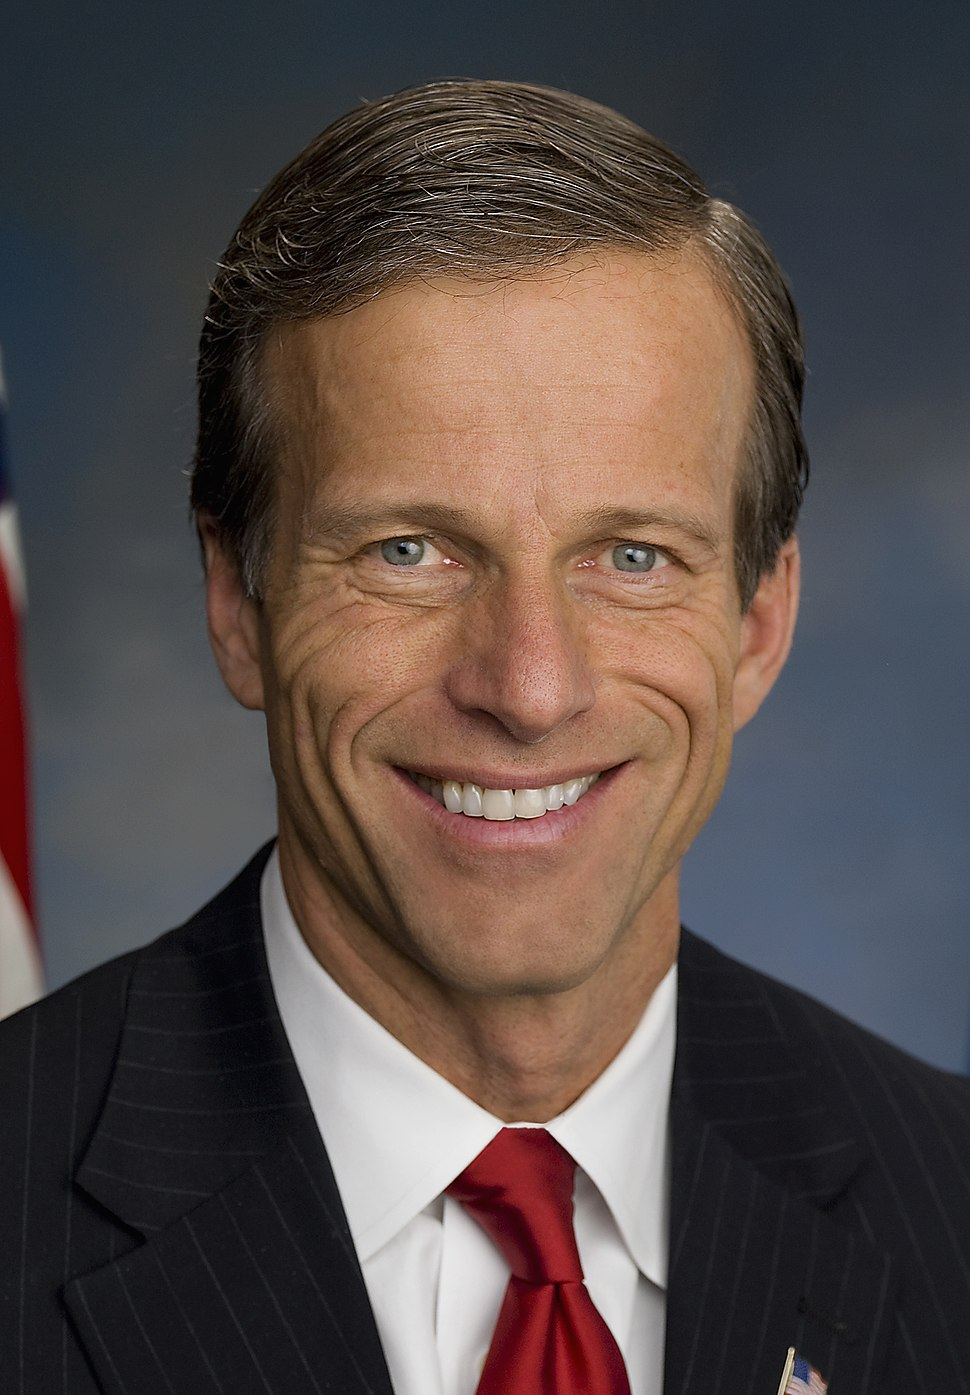 John Thune, official portrait, 111th Congress (cropped)